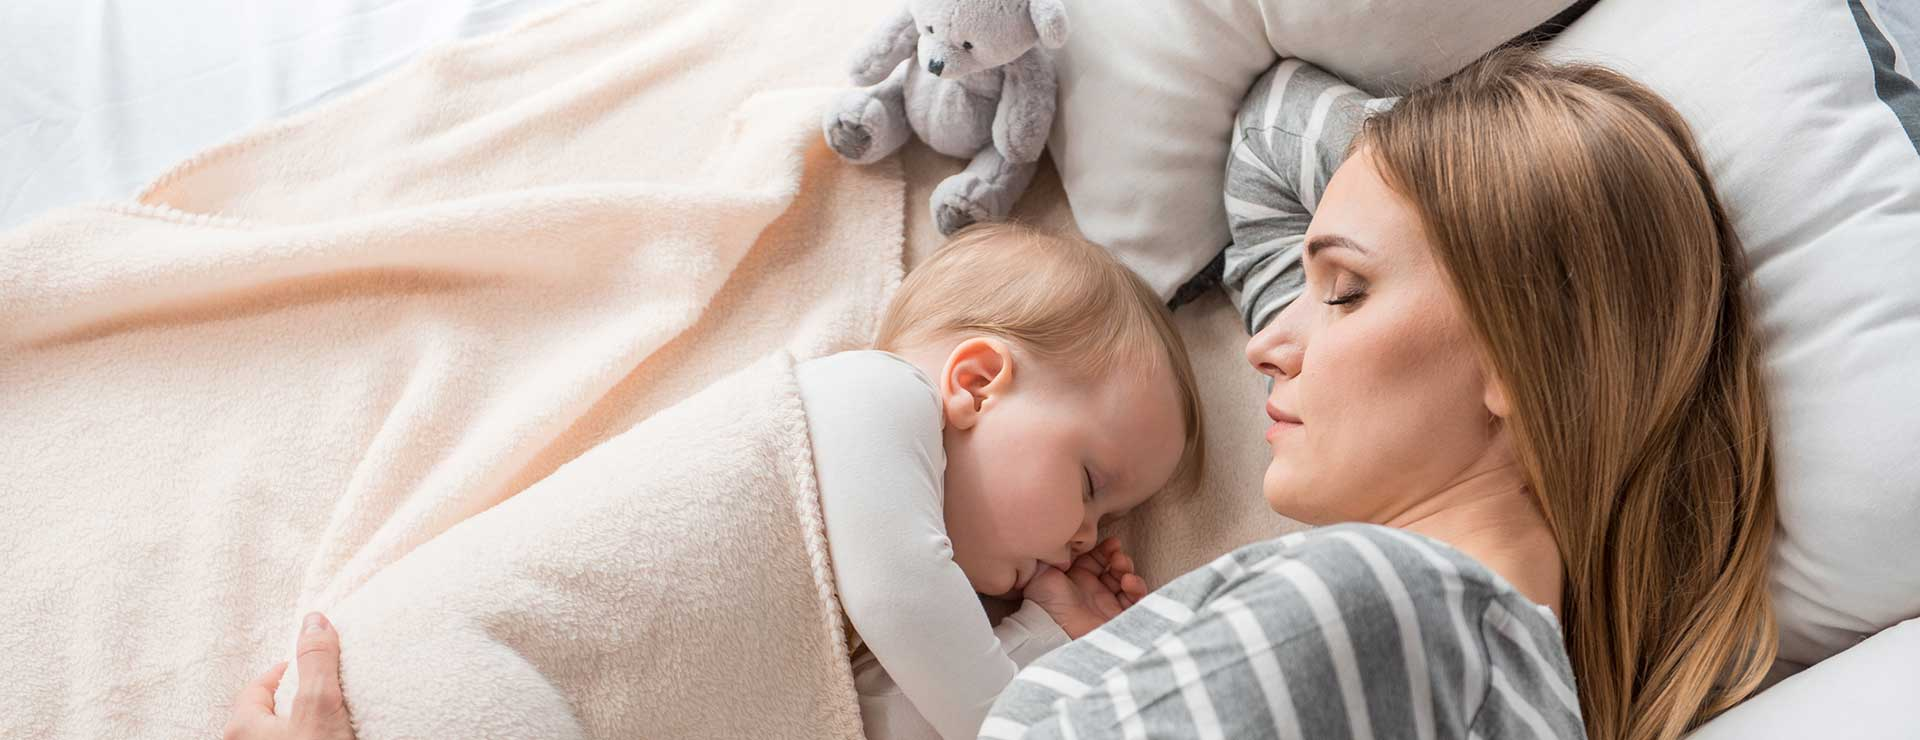 New Parents Tips For Quality Rest Johns Hopkins Medicine